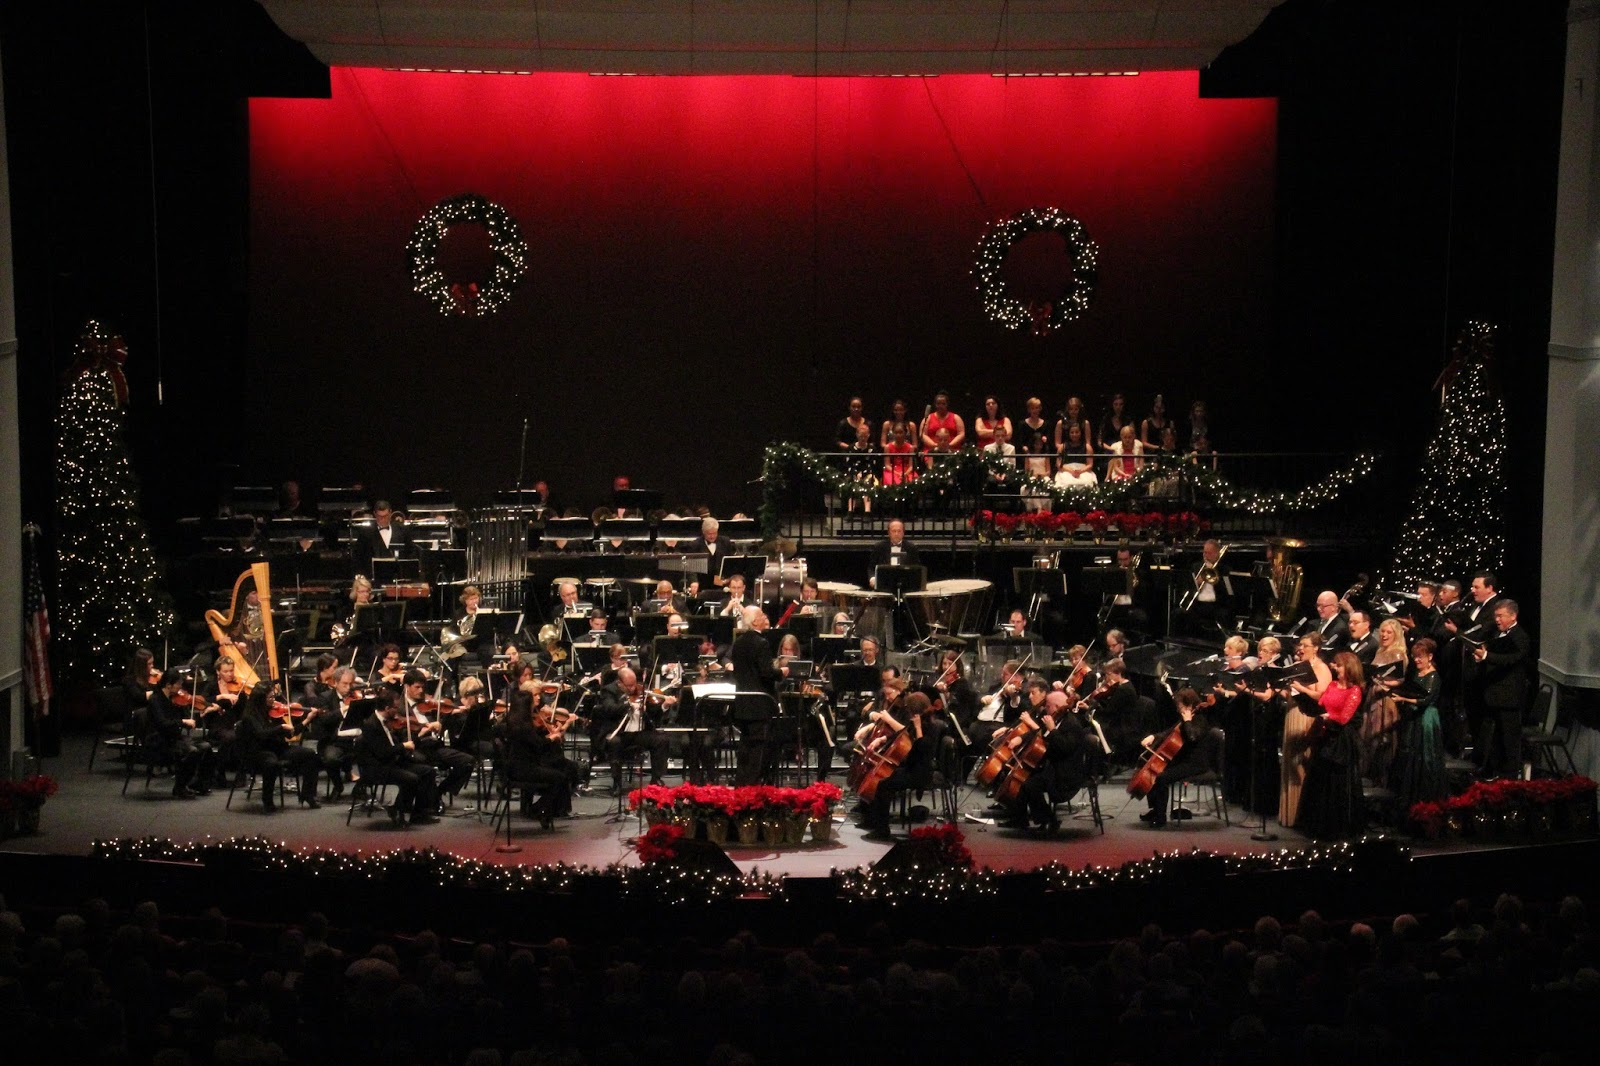 f68b55fdb3e74 ComeSeeOrlando.com: Orlando Philharmonic Orchestra Captures The Spirit Of  The Season At One Of The Region's Most Popular Holiday Concerts